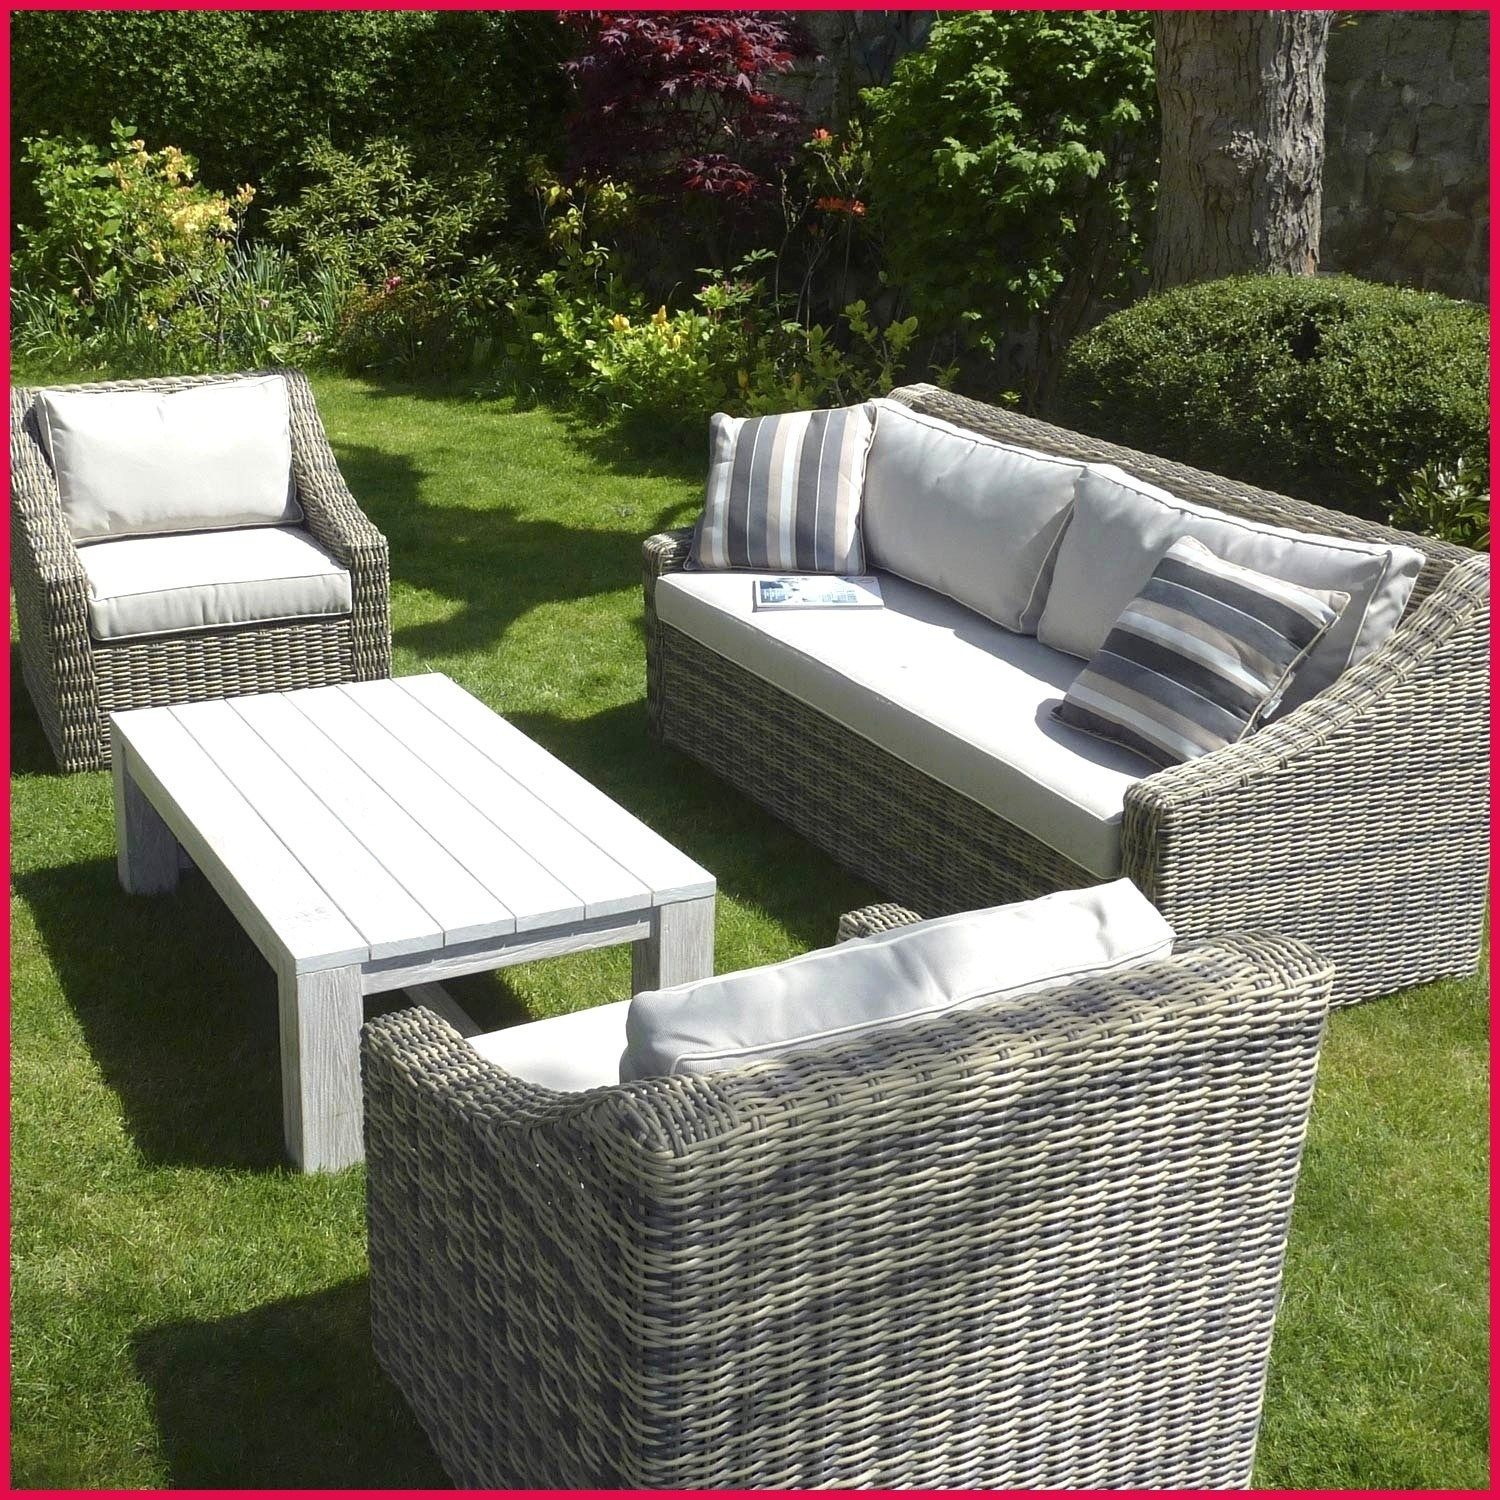 Inspirational Salon De Jardin Corona Cappuccino Outdoor Furniture Paris Interiors Outdoor Decor